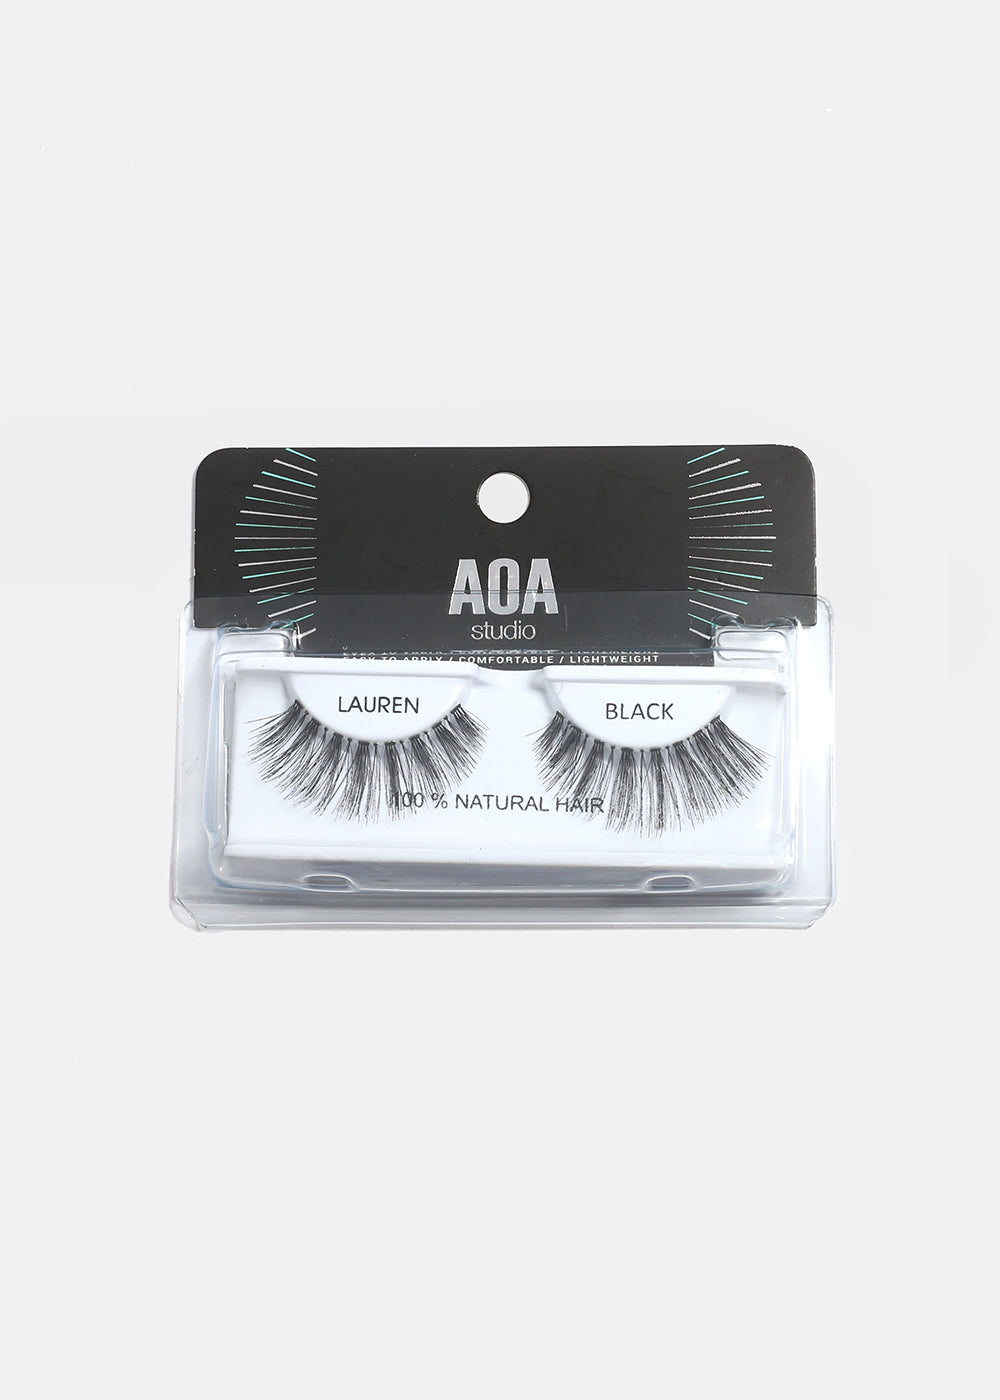 AOA Studio Eyelashes - Lauren